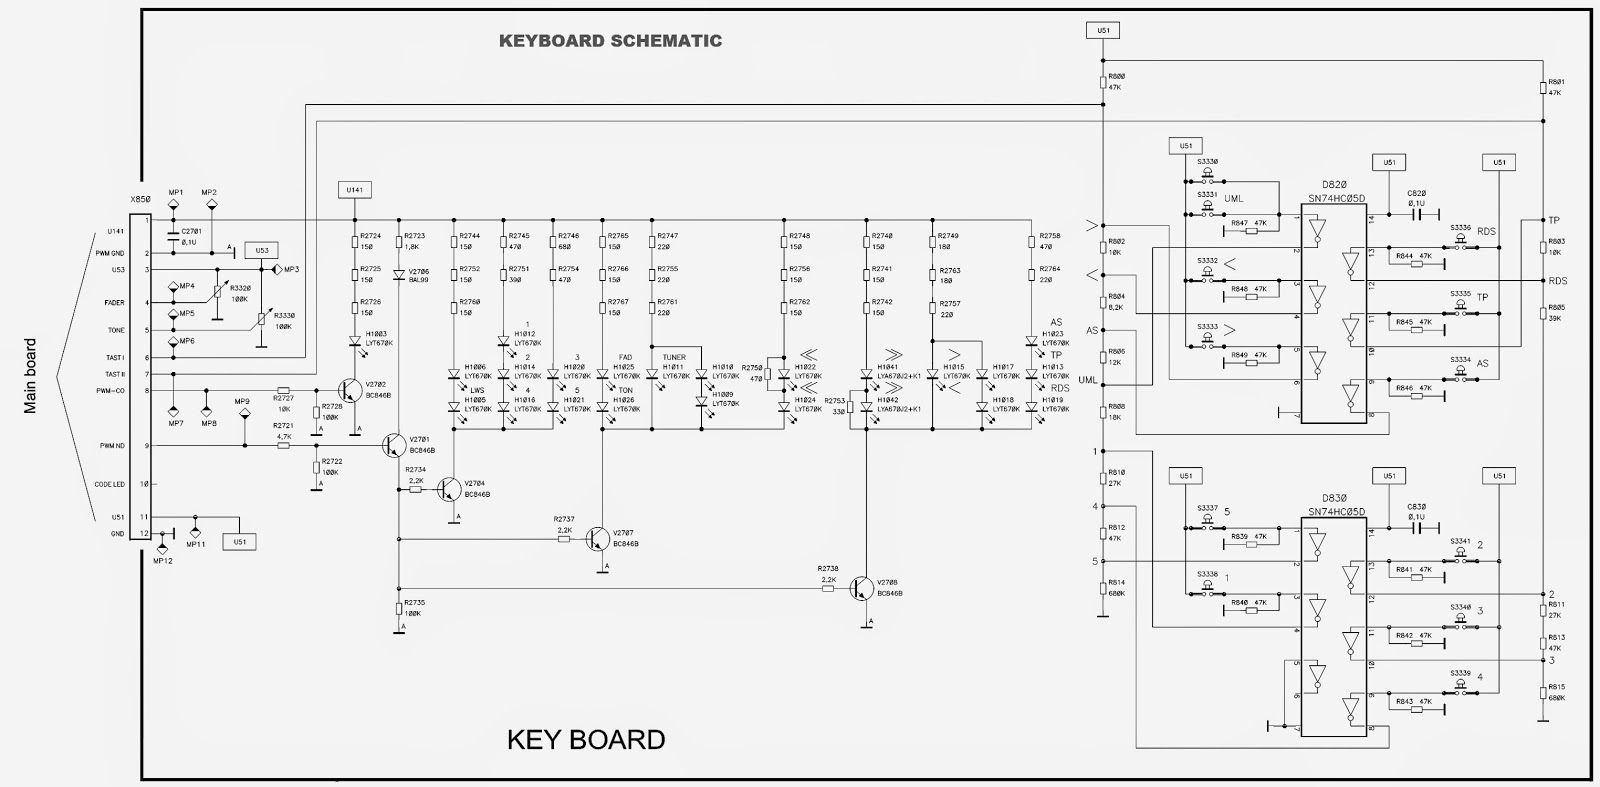 blaupunkt car 300 wiring diagram wiring diagram rh cleanprosperity co blaupunkt cd30 wiring diagram blaupunkt werke gmbh wiring diagram